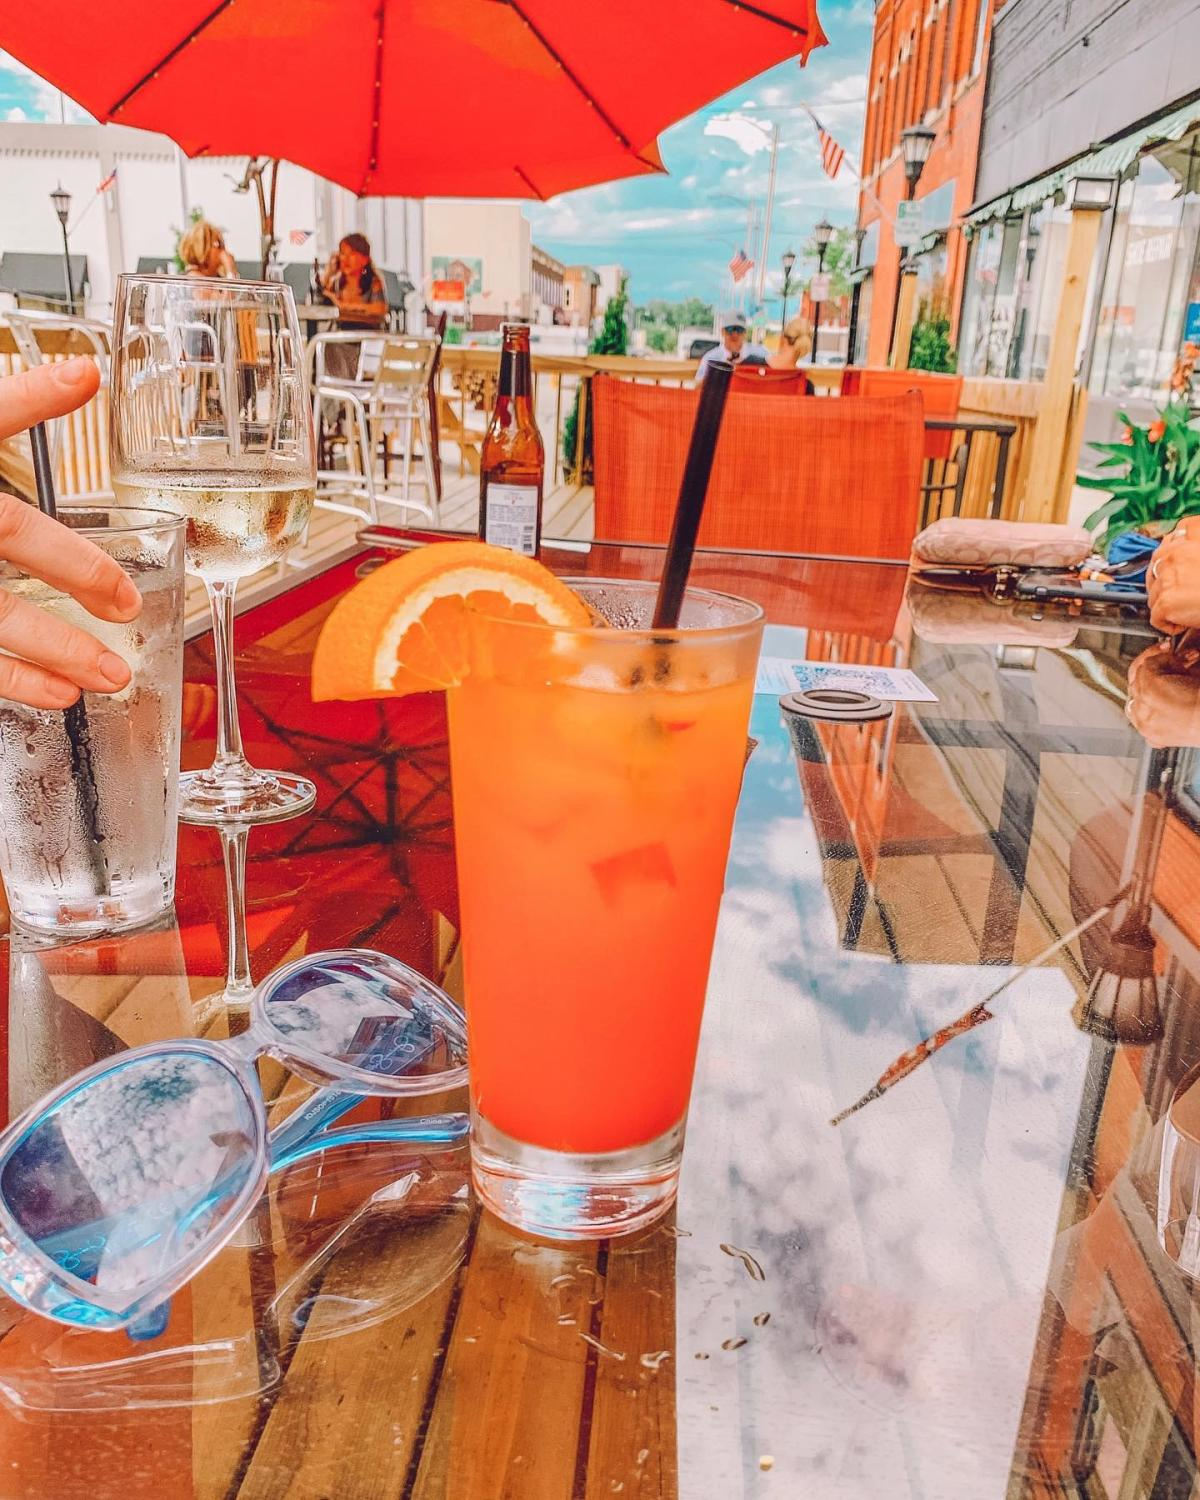 Summery drinks on the outdoor patio at Old City Hall in Bay City